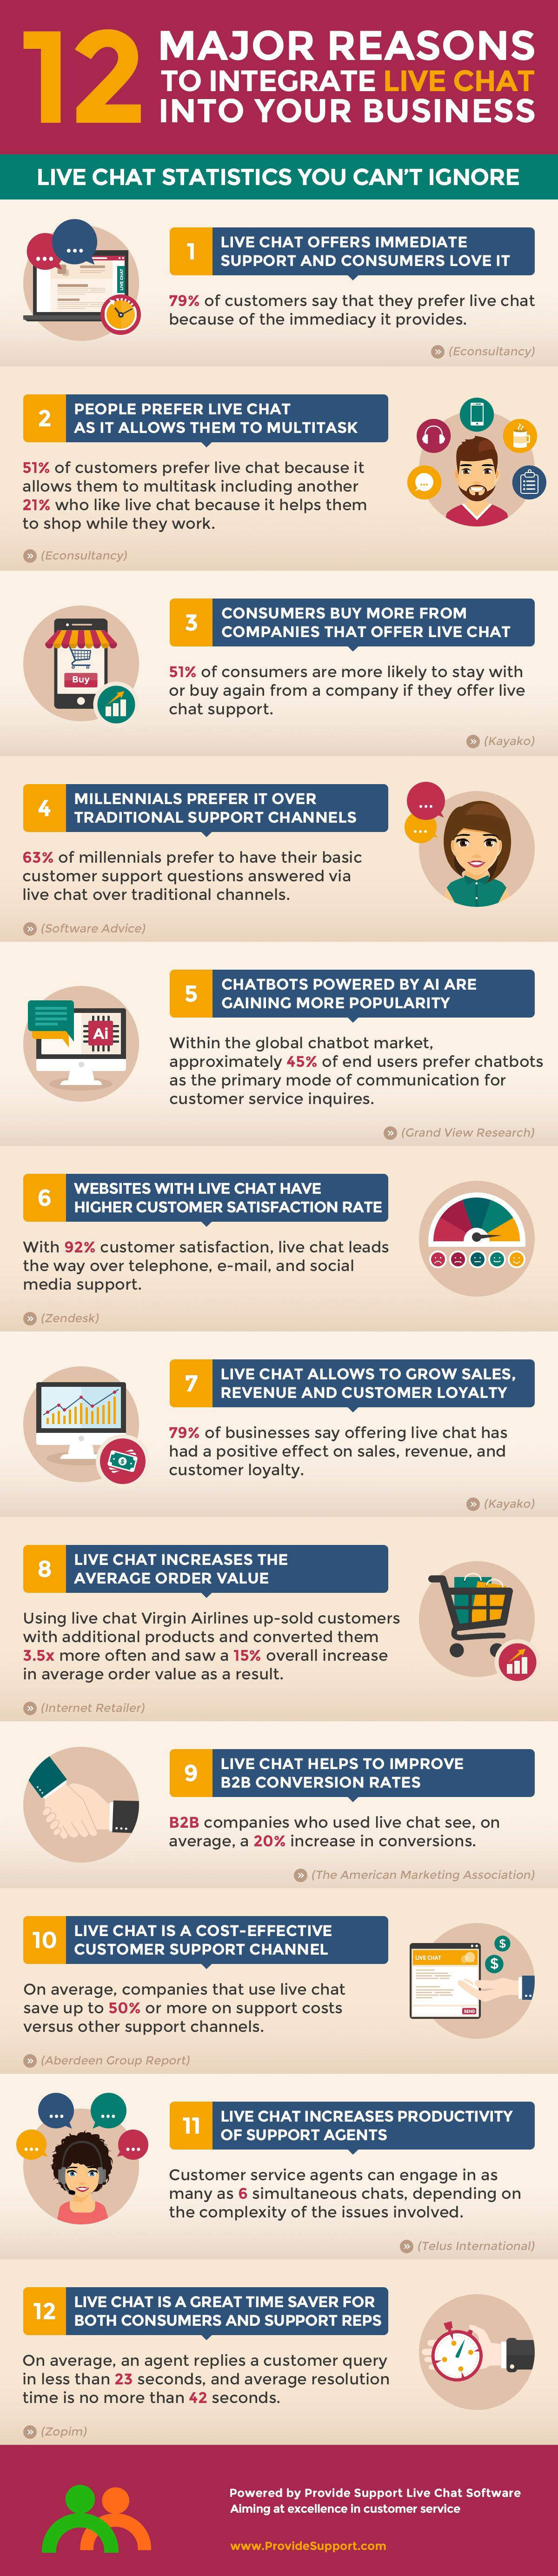 major reasons to integrate live chat into your business